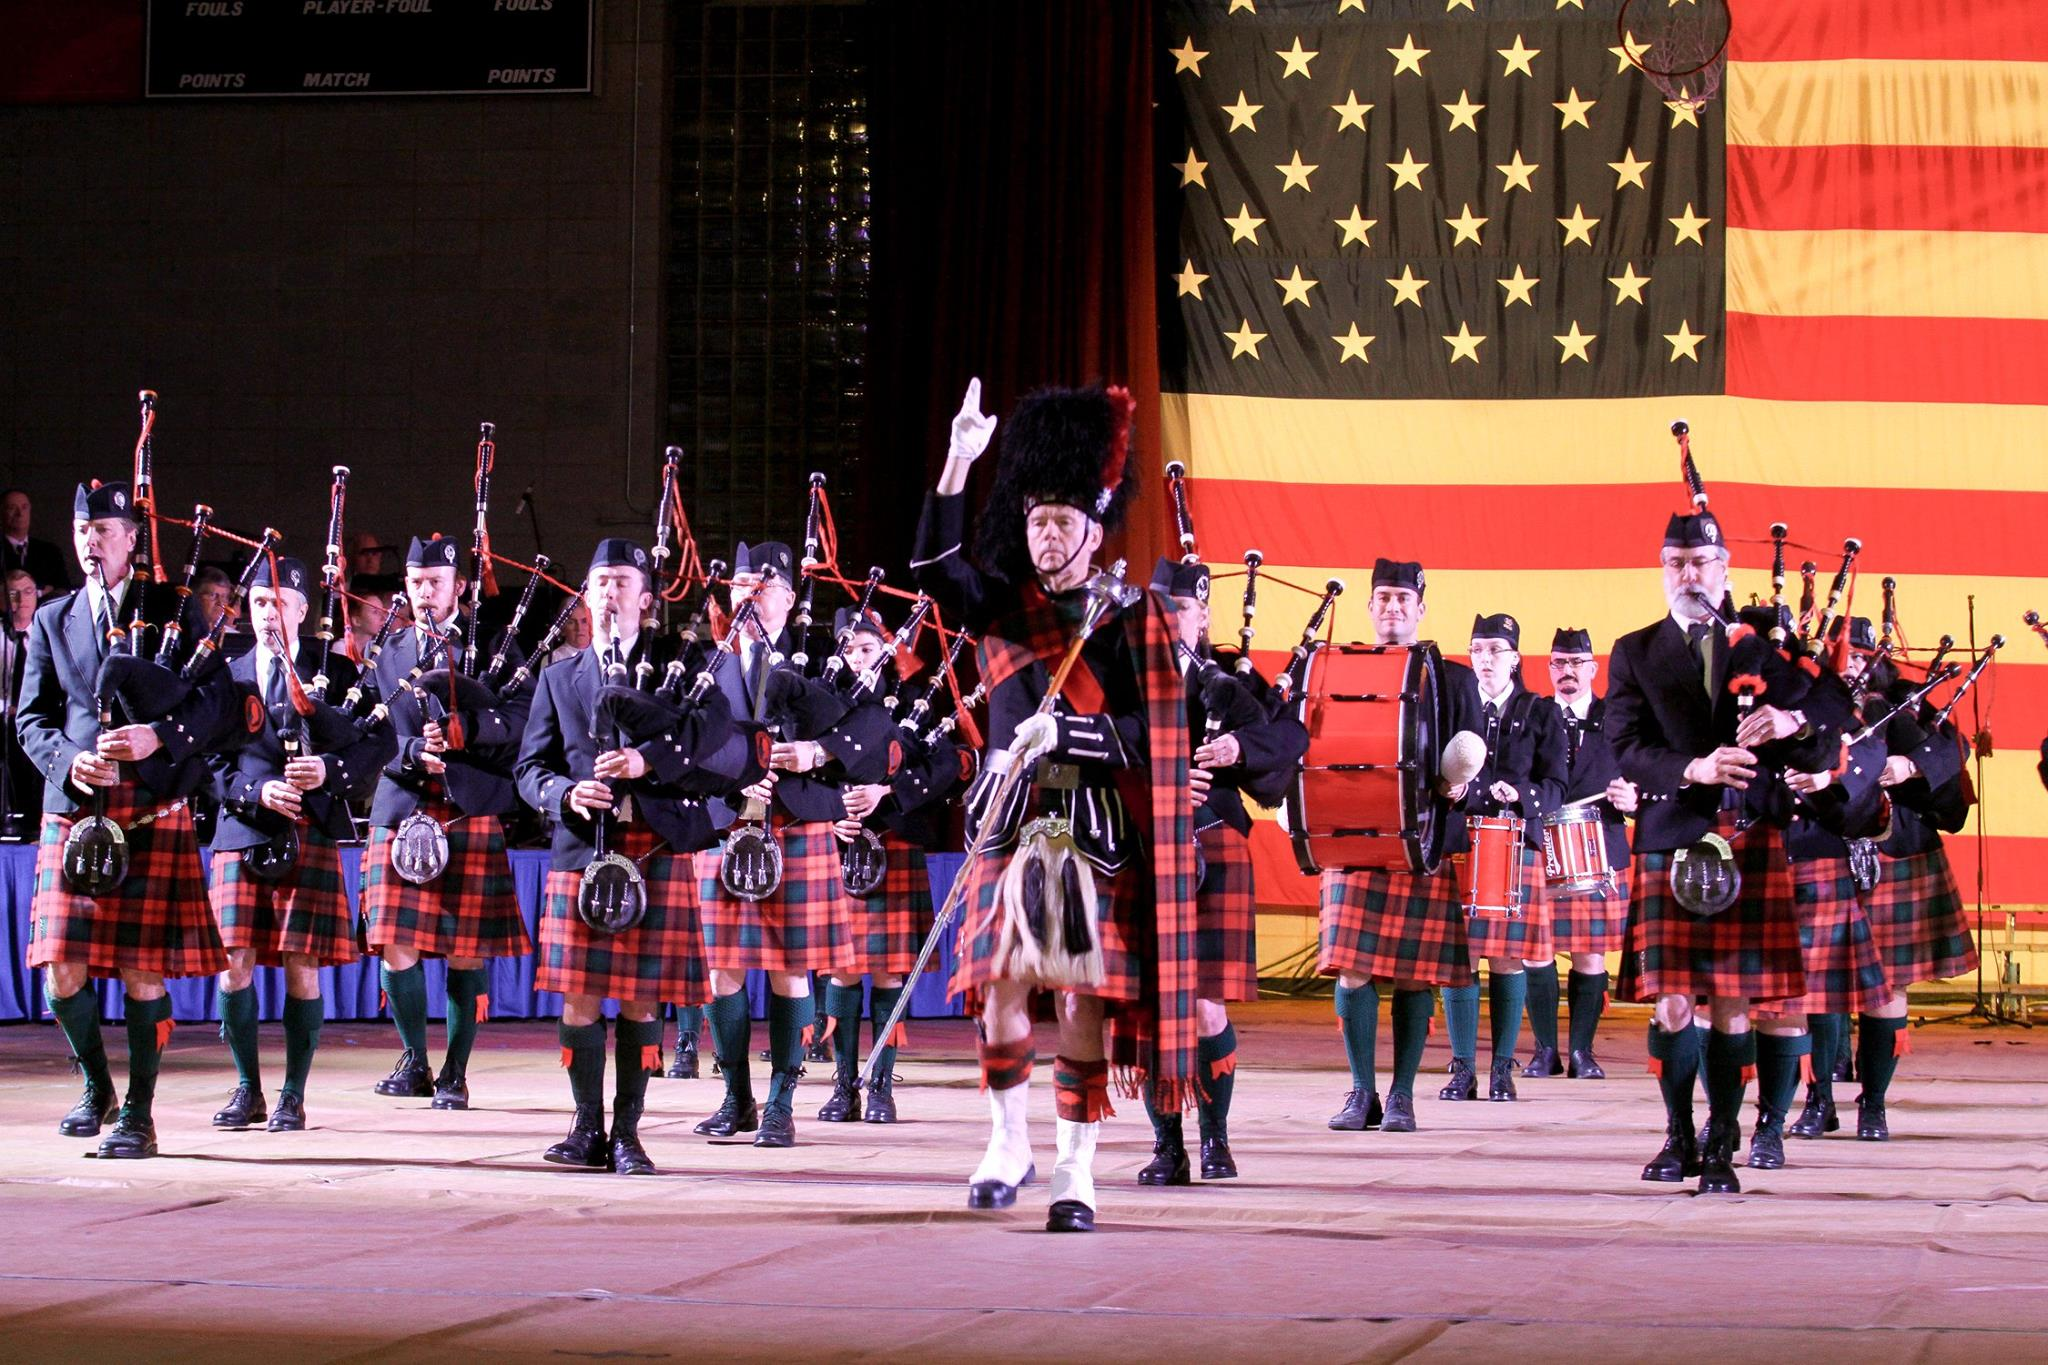 Washington Memorial Pipe Band